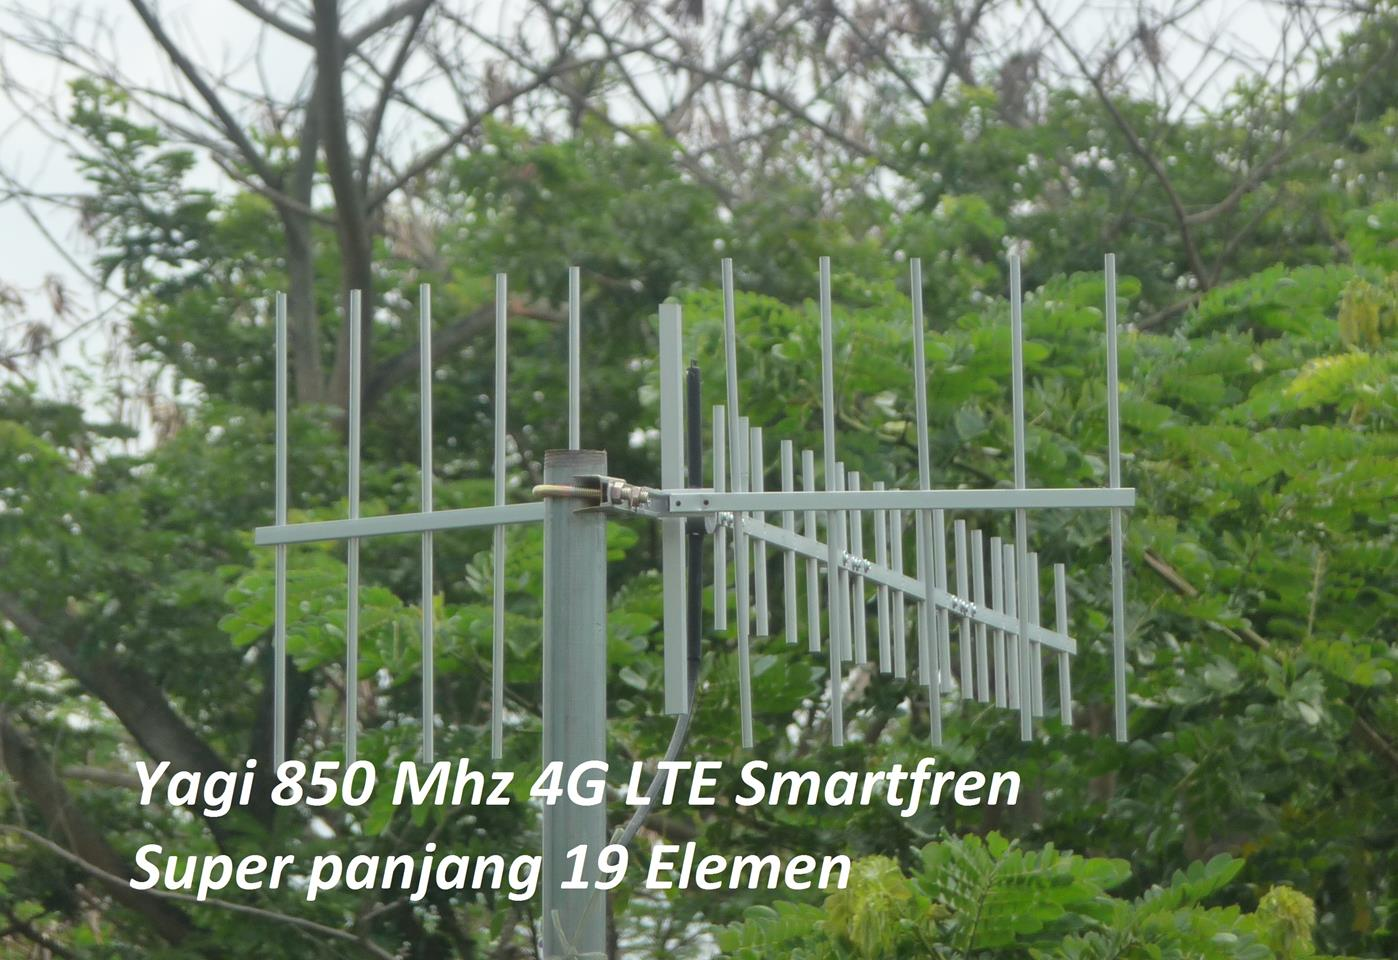 Antena Yagi Penguat Sinyal 19 Element 1 Pigtail